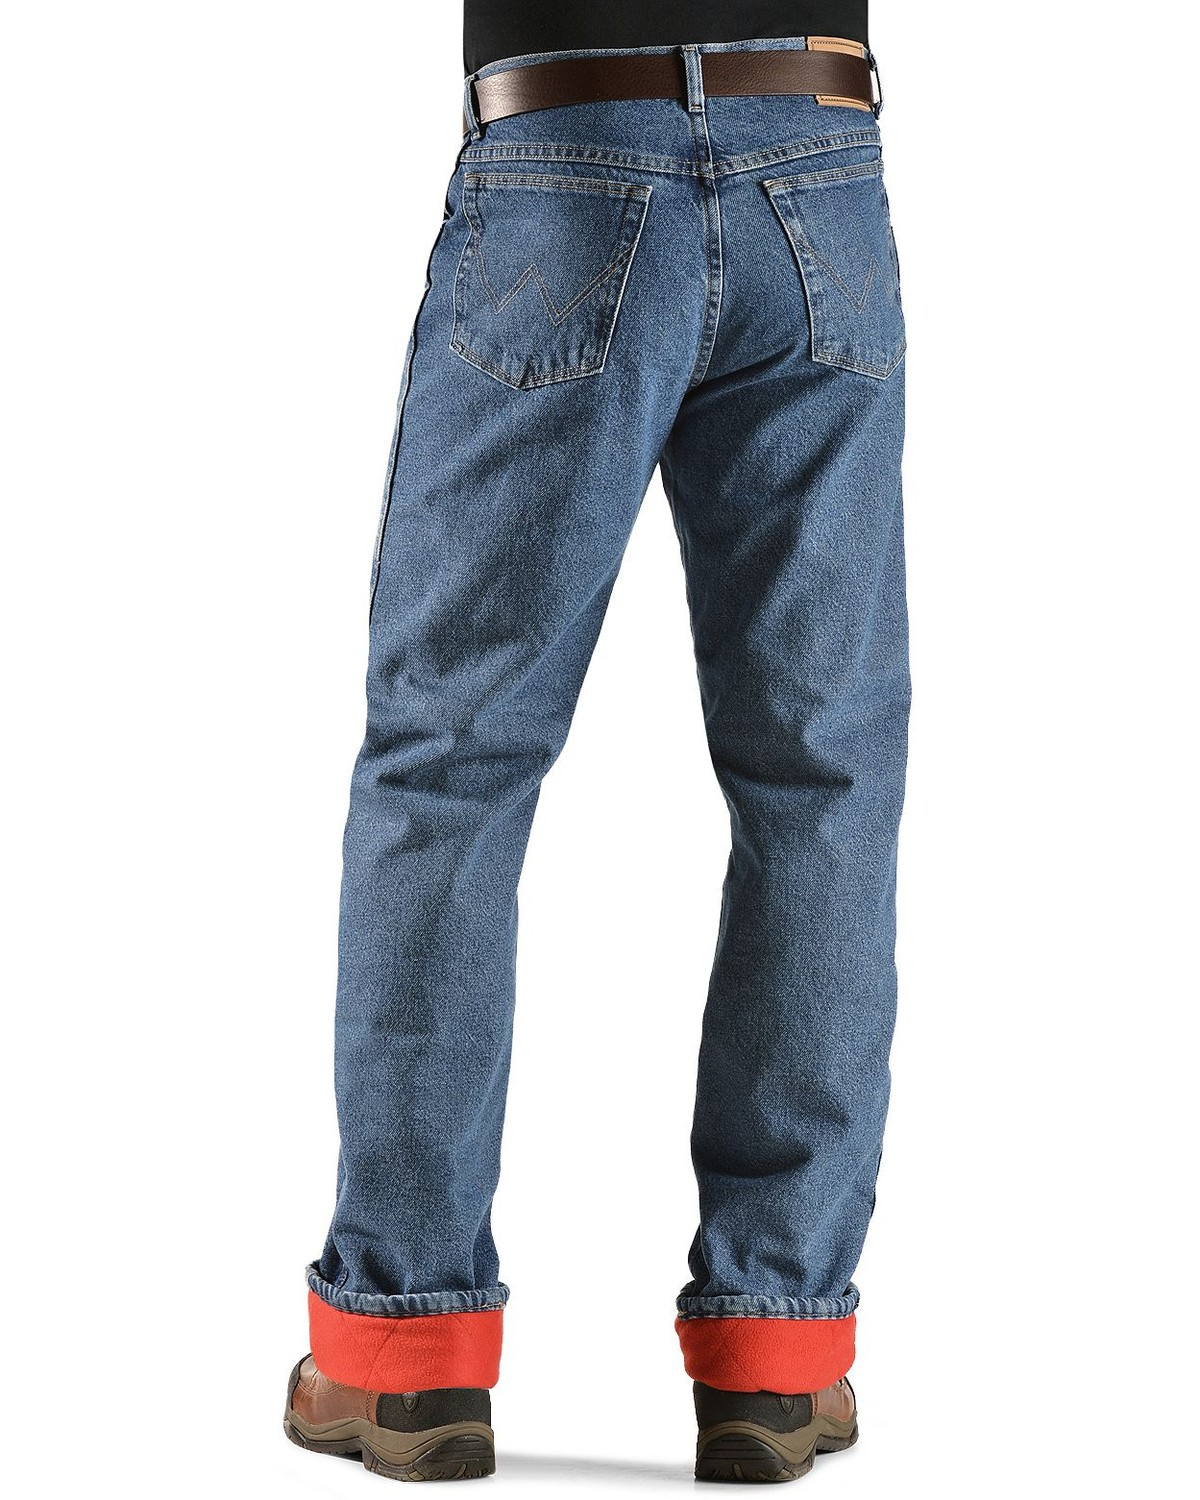 Find great deals on eBay for lined jeans. Shop with confidence.